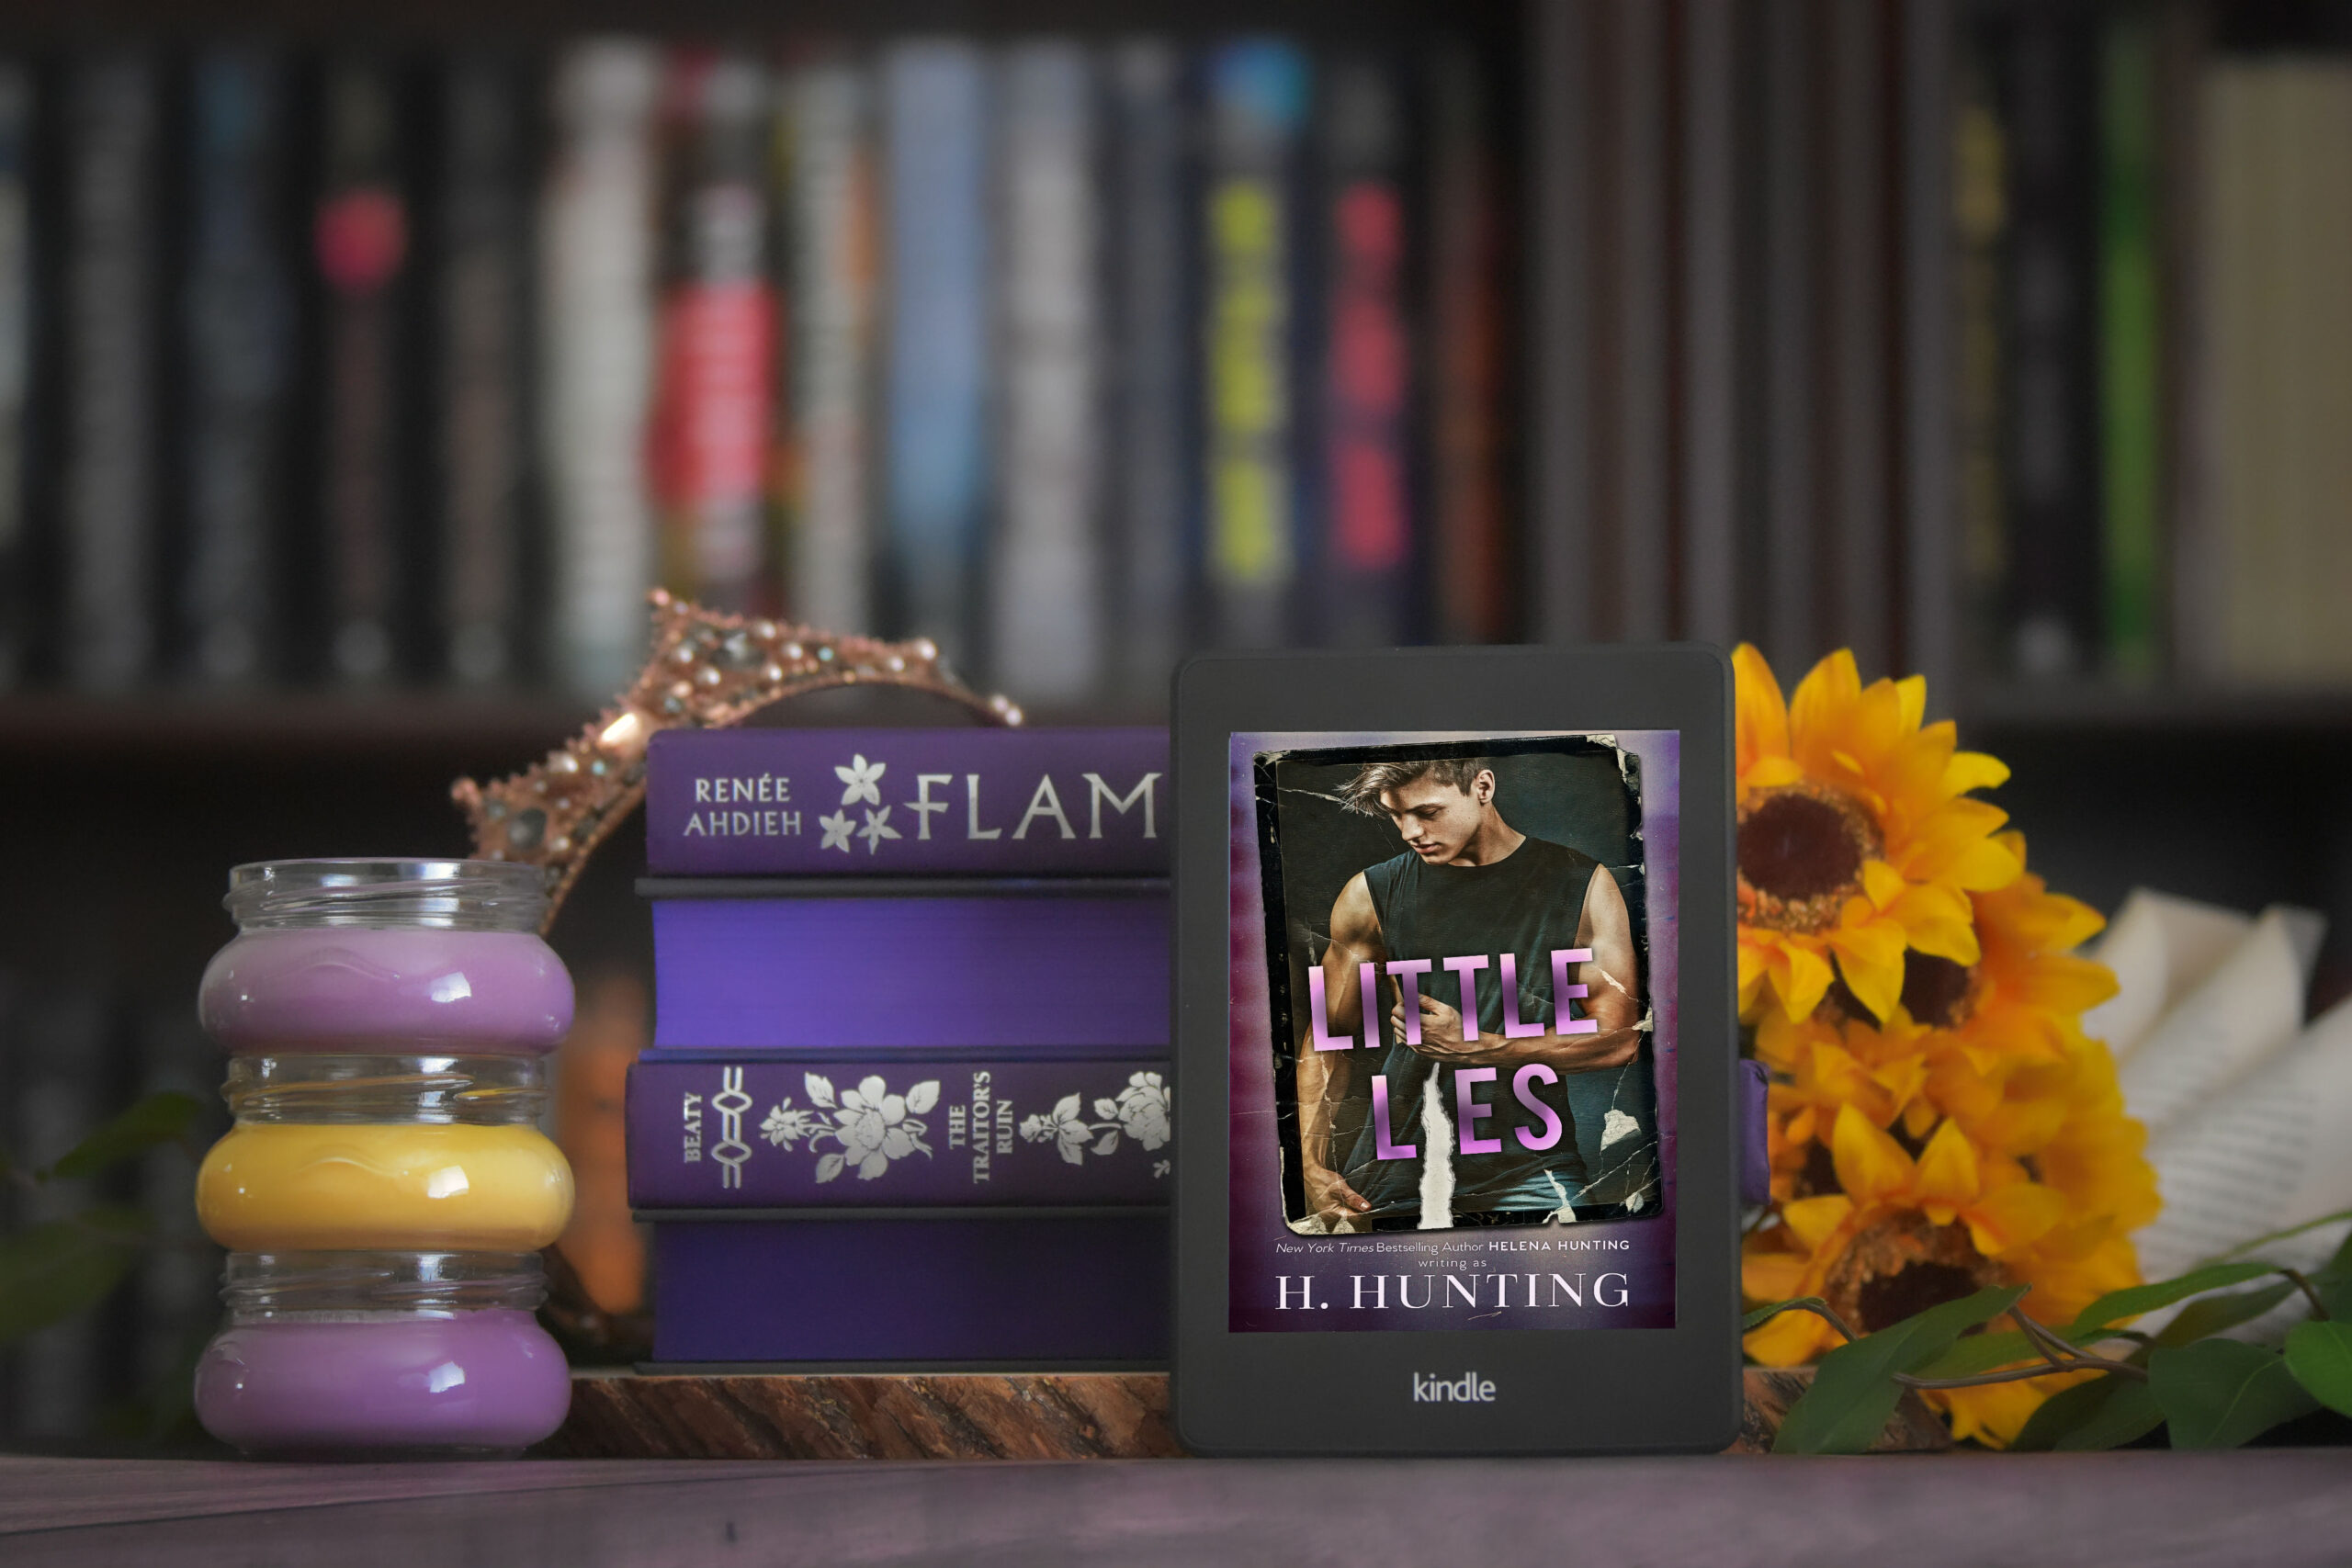 Little Lies by H. Hunting | Holy Angsty Romance ARC Review